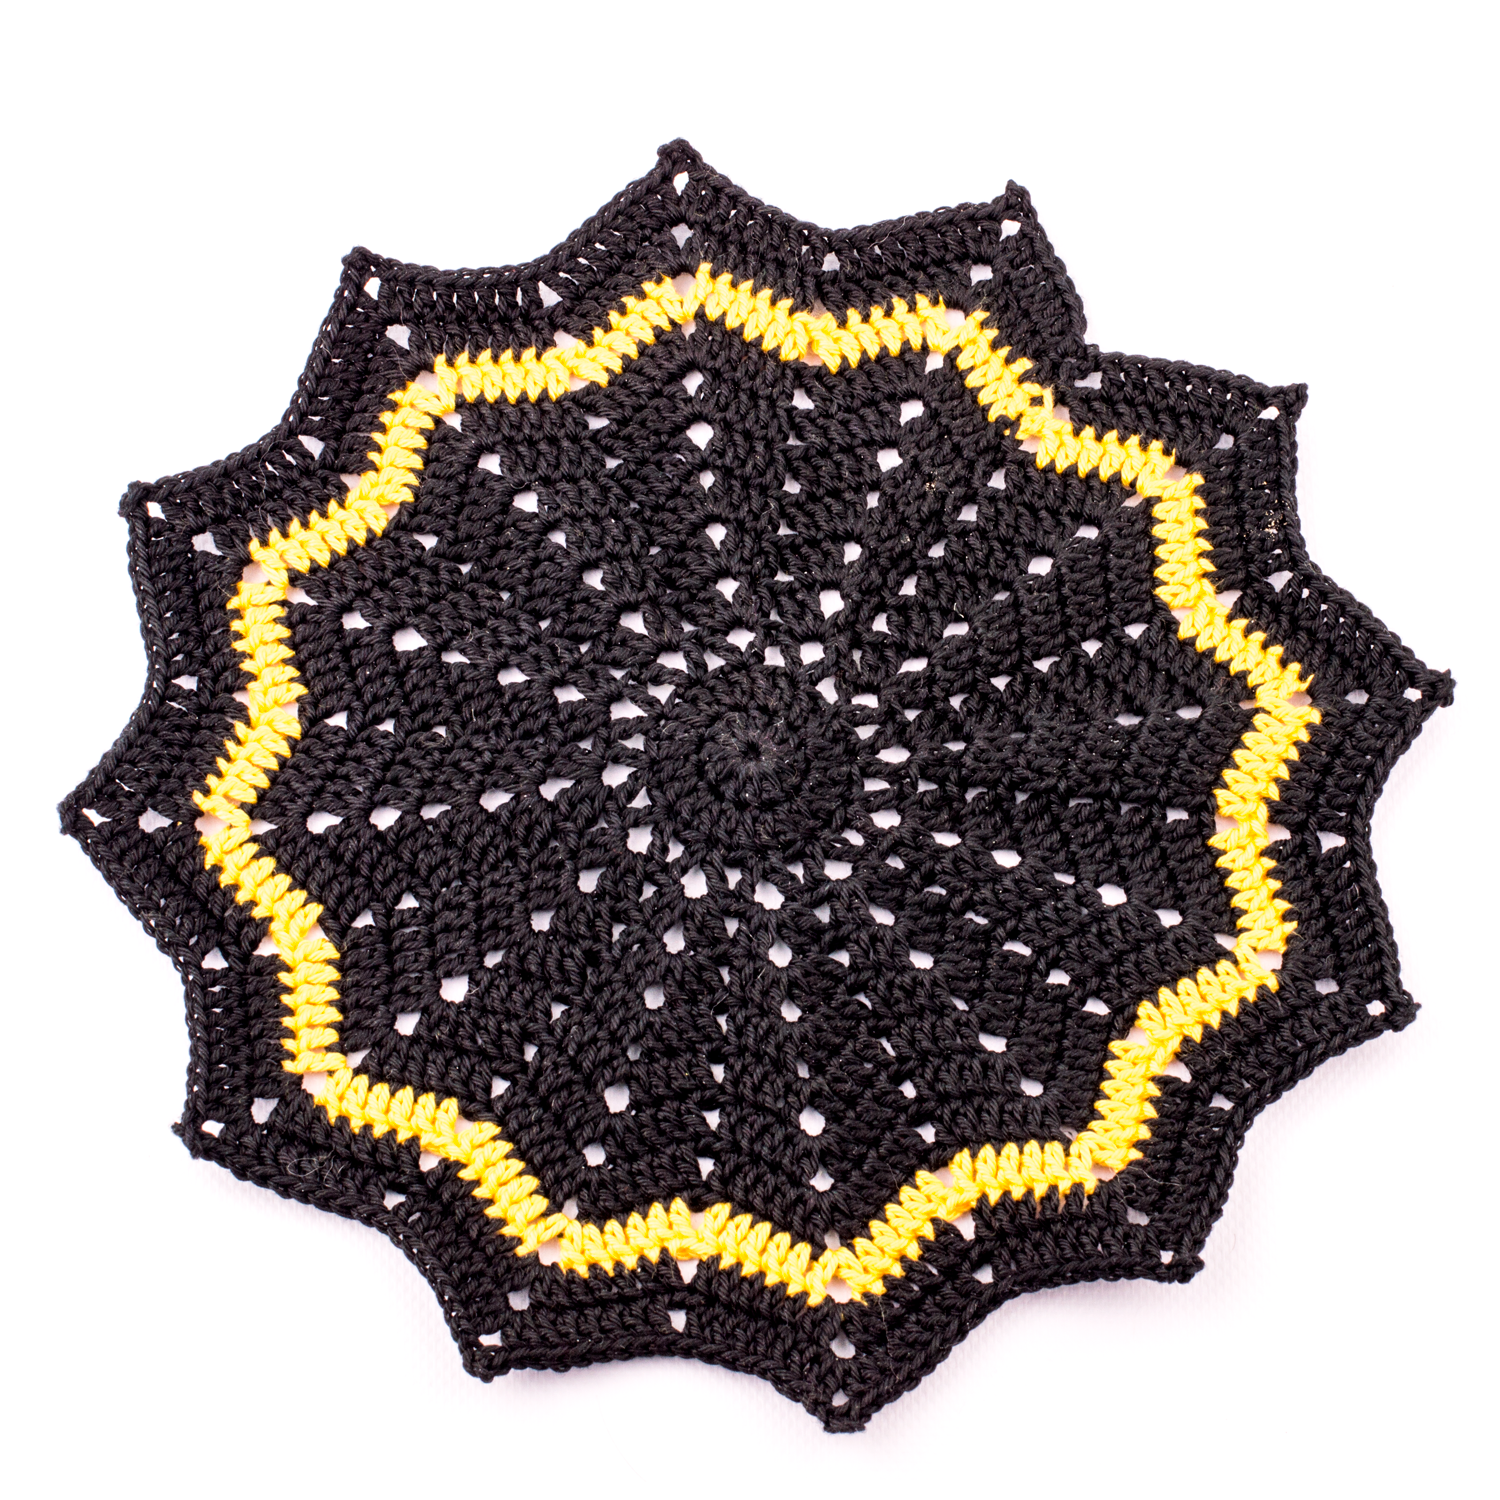 Crochet Batman Items You Will Love To Make | The WHOot | 1500x1500